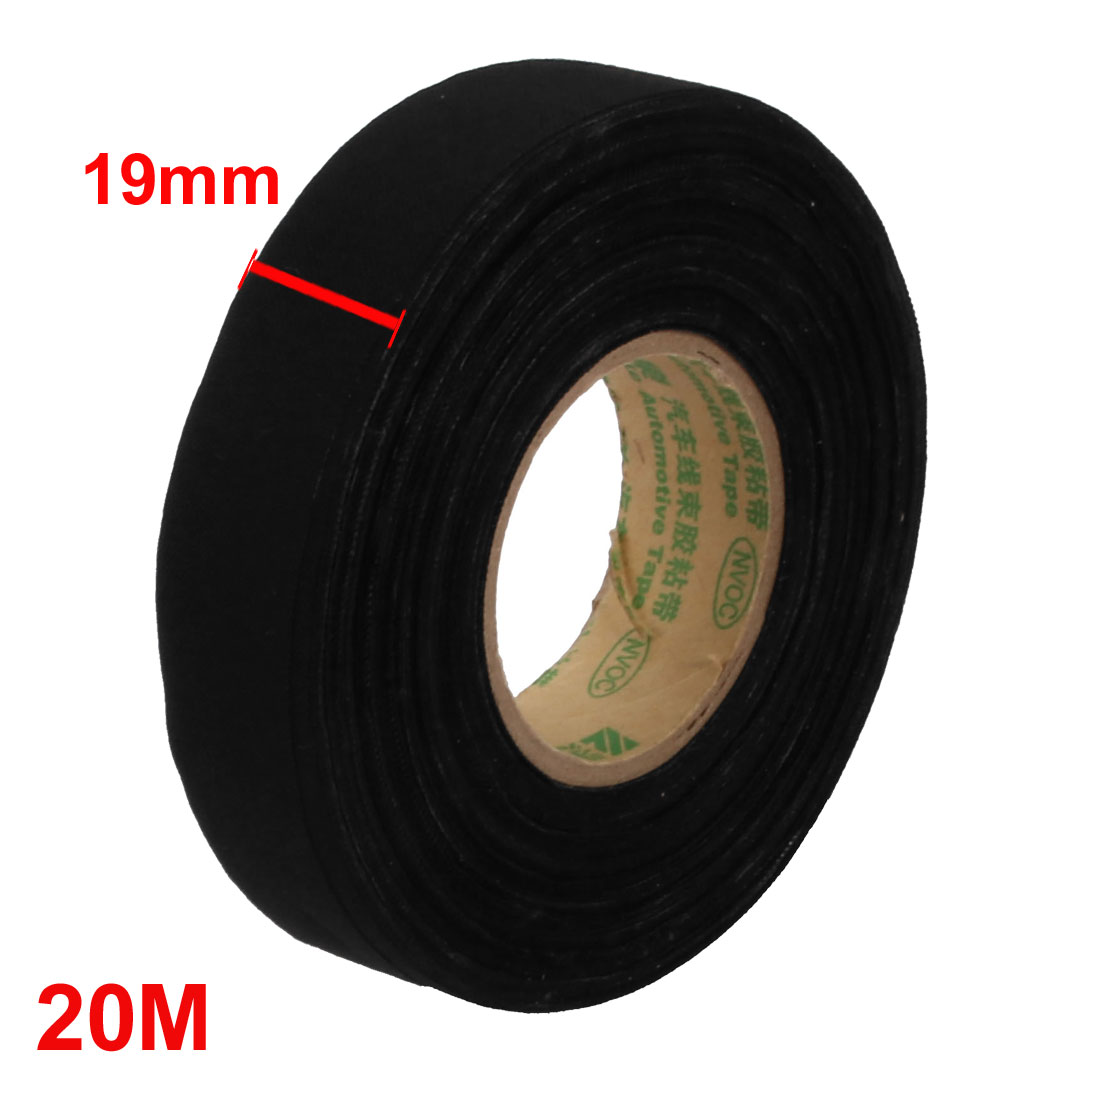 unique bargains black 20m long 19mm width insulation adhesive cloth tape car wire harness tape [ 1100 x 1100 Pixel ]